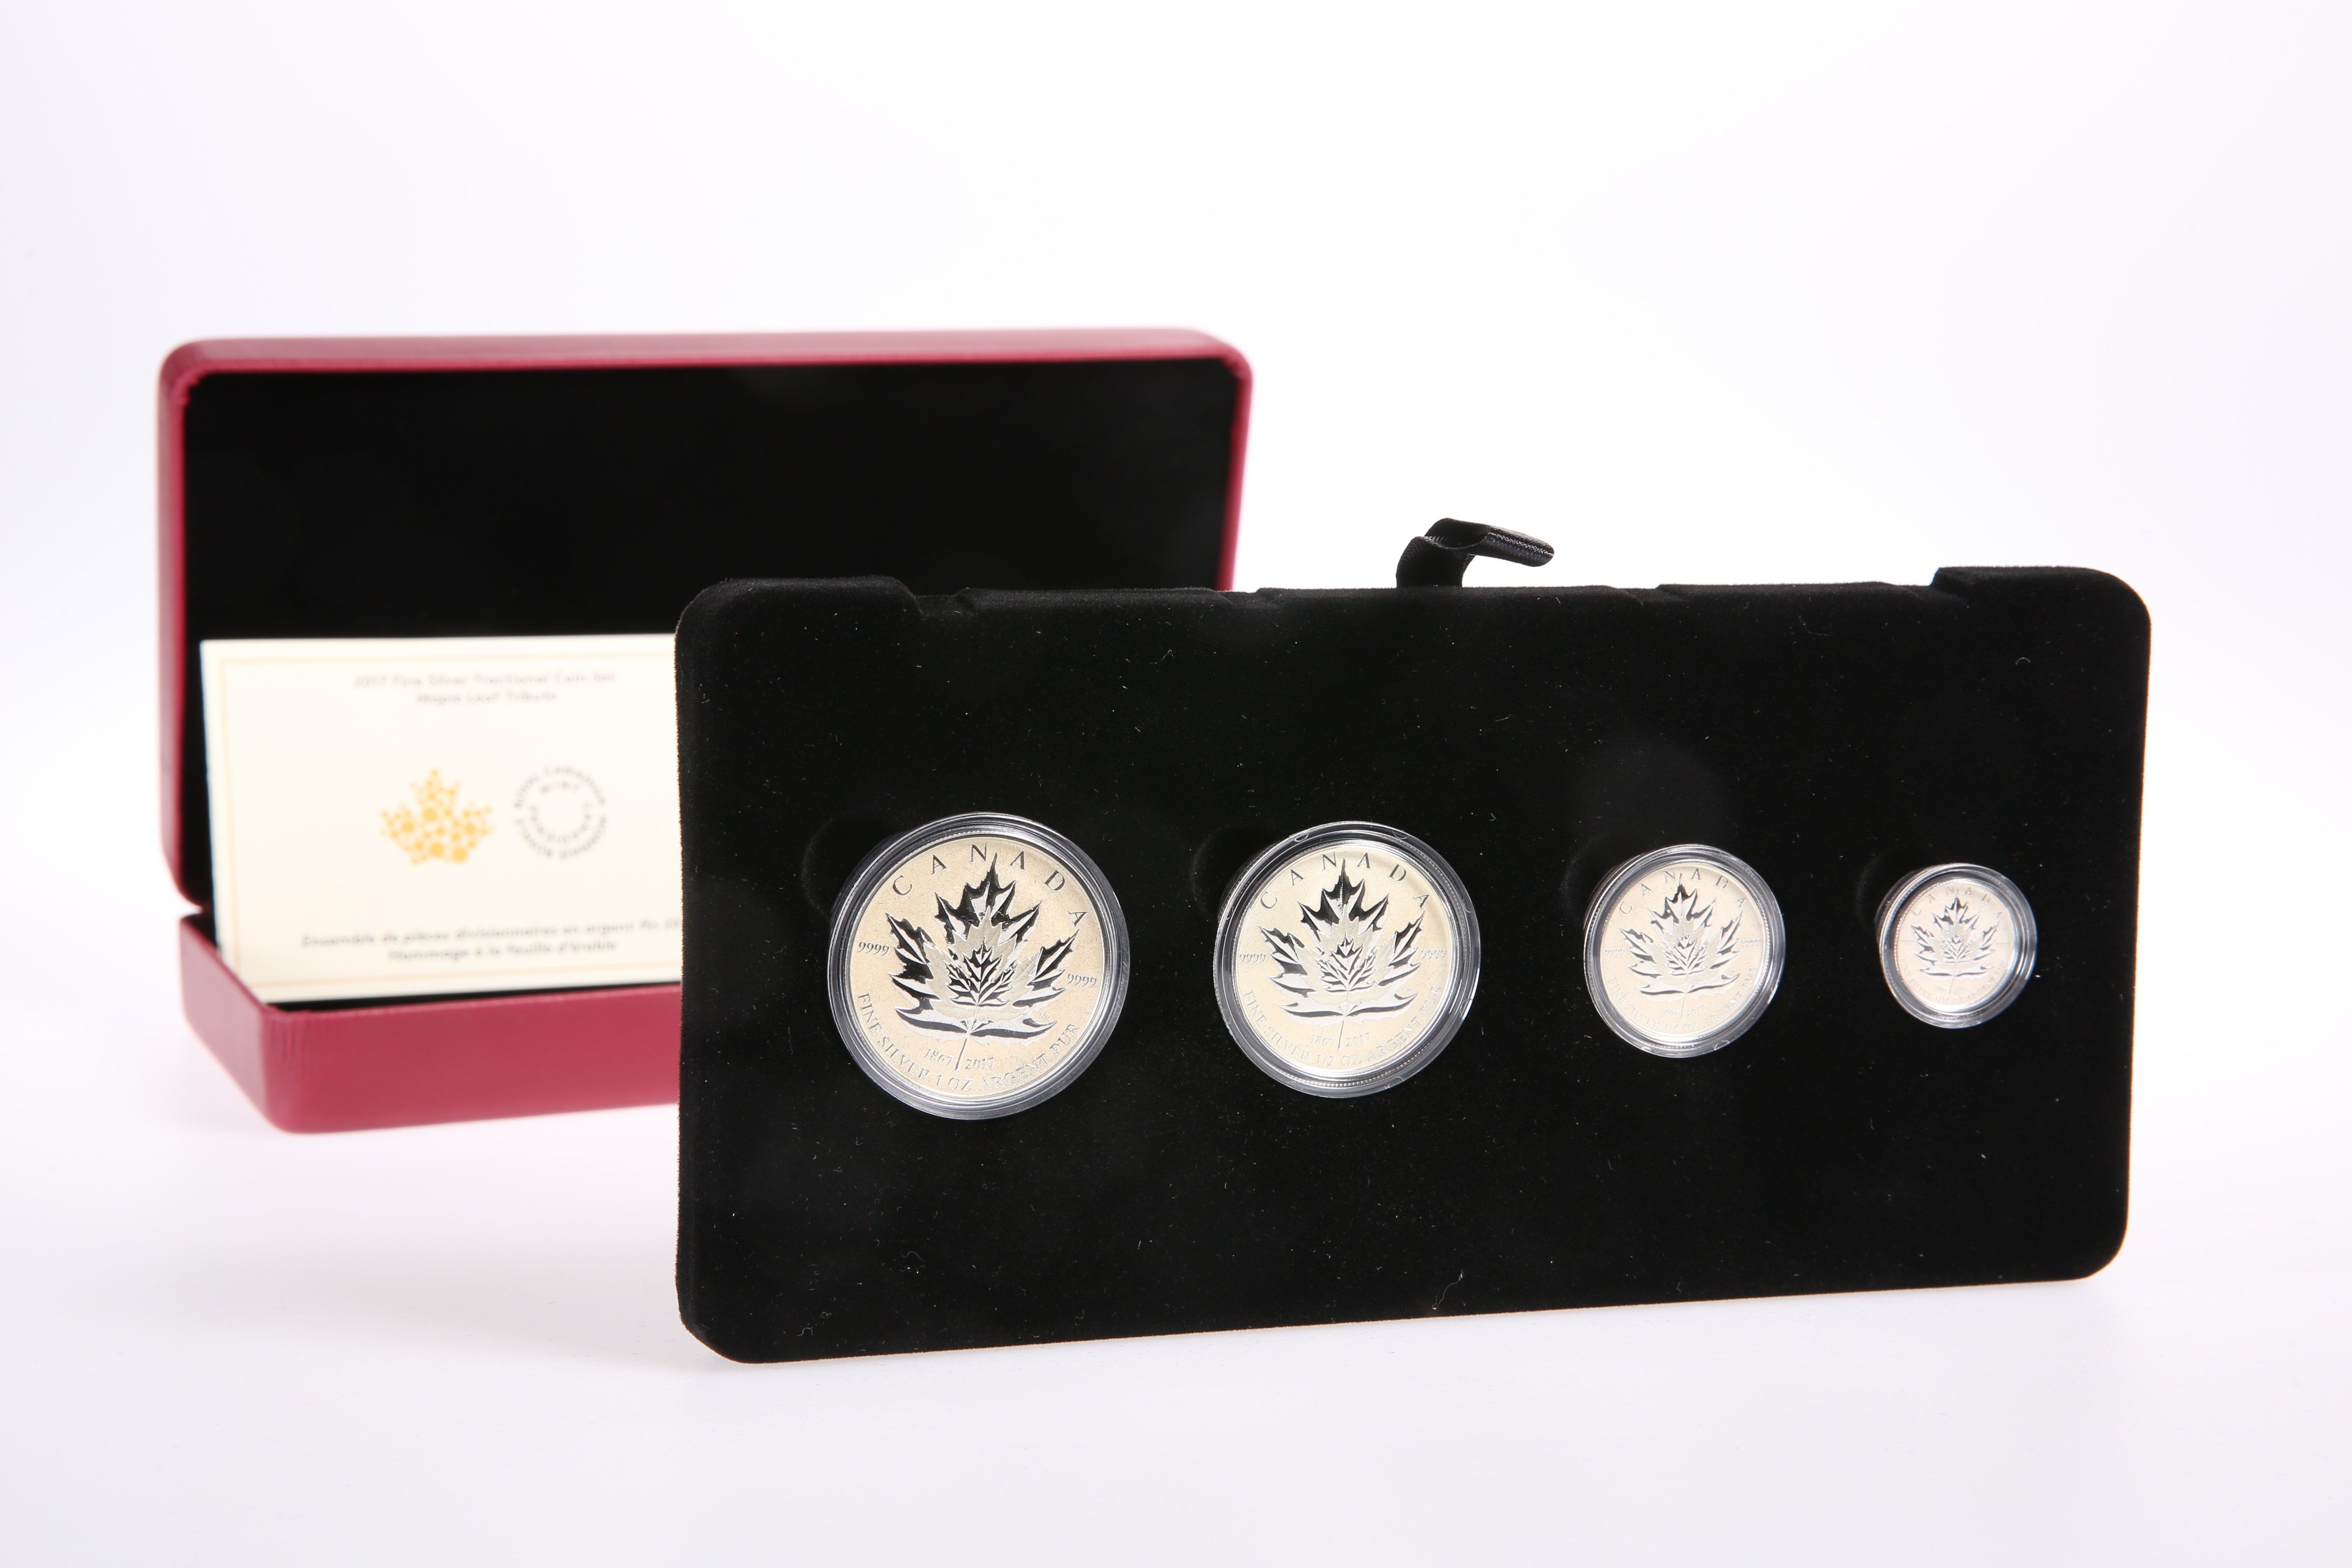 """A ROYAL CANADIAN MINT 2017 FINE SILVER FRACTIONAL COIN SET, """"MAPLE LEAF TRIBUTE"""", boxed with COA - Image 2 of 2"""